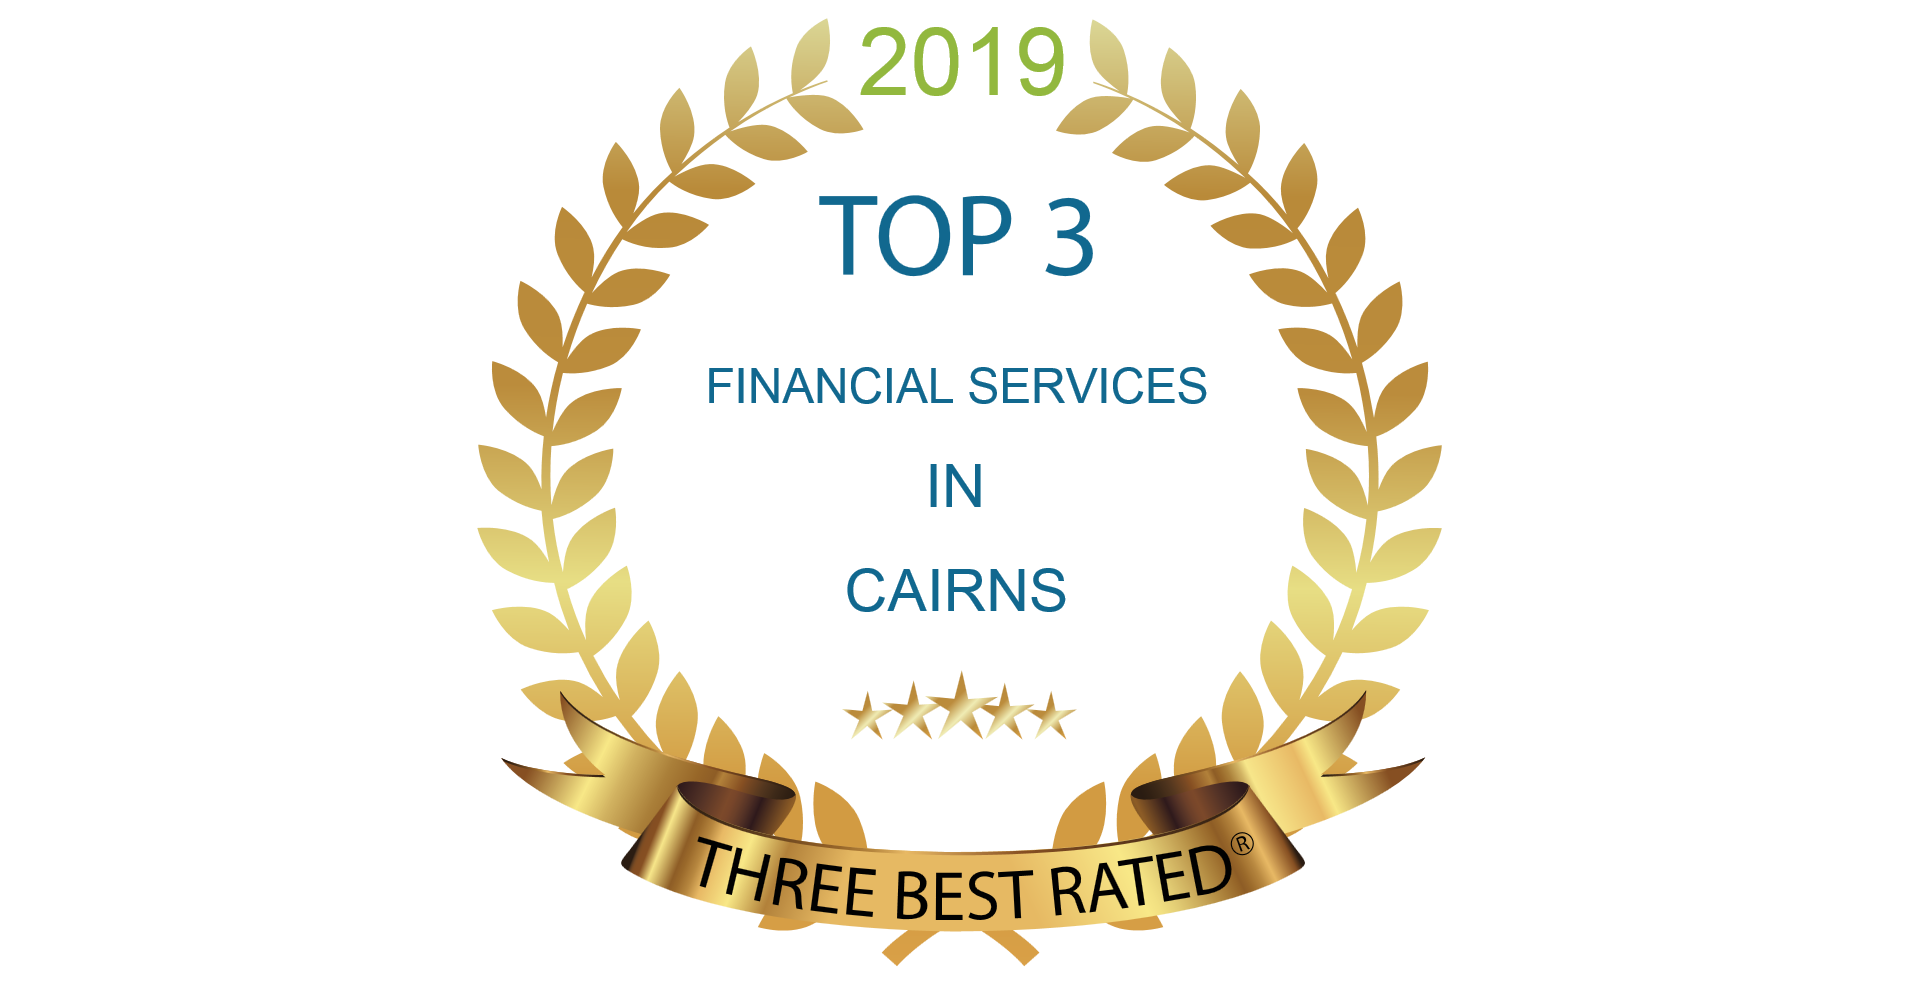 financial services cairns 2019 clr